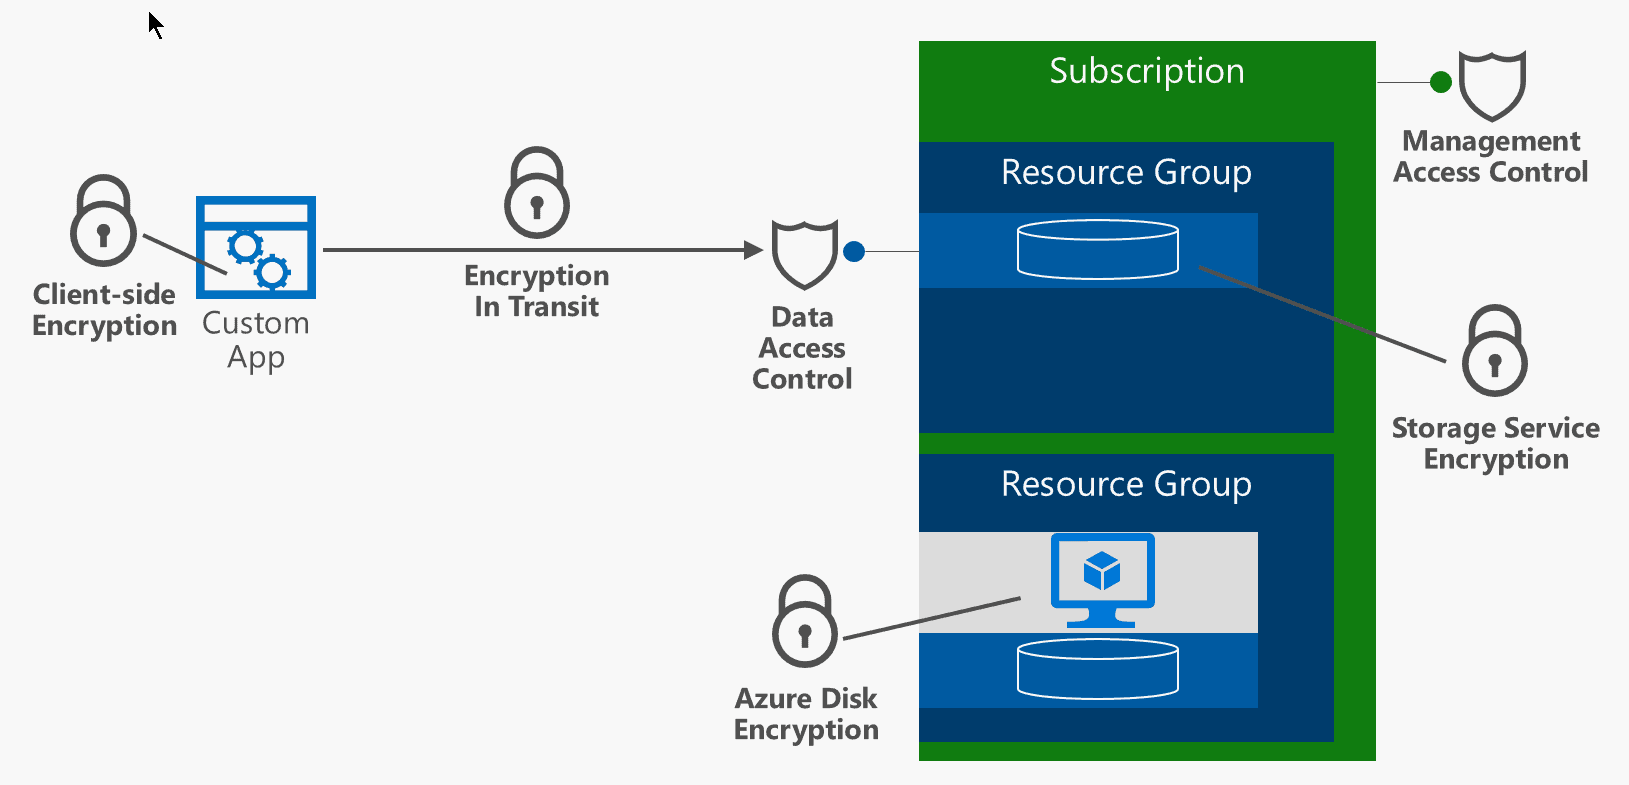 in this article we will look at ways to secure azure storage data such as data encryption at rest and in transit we will describe various mechanisms for